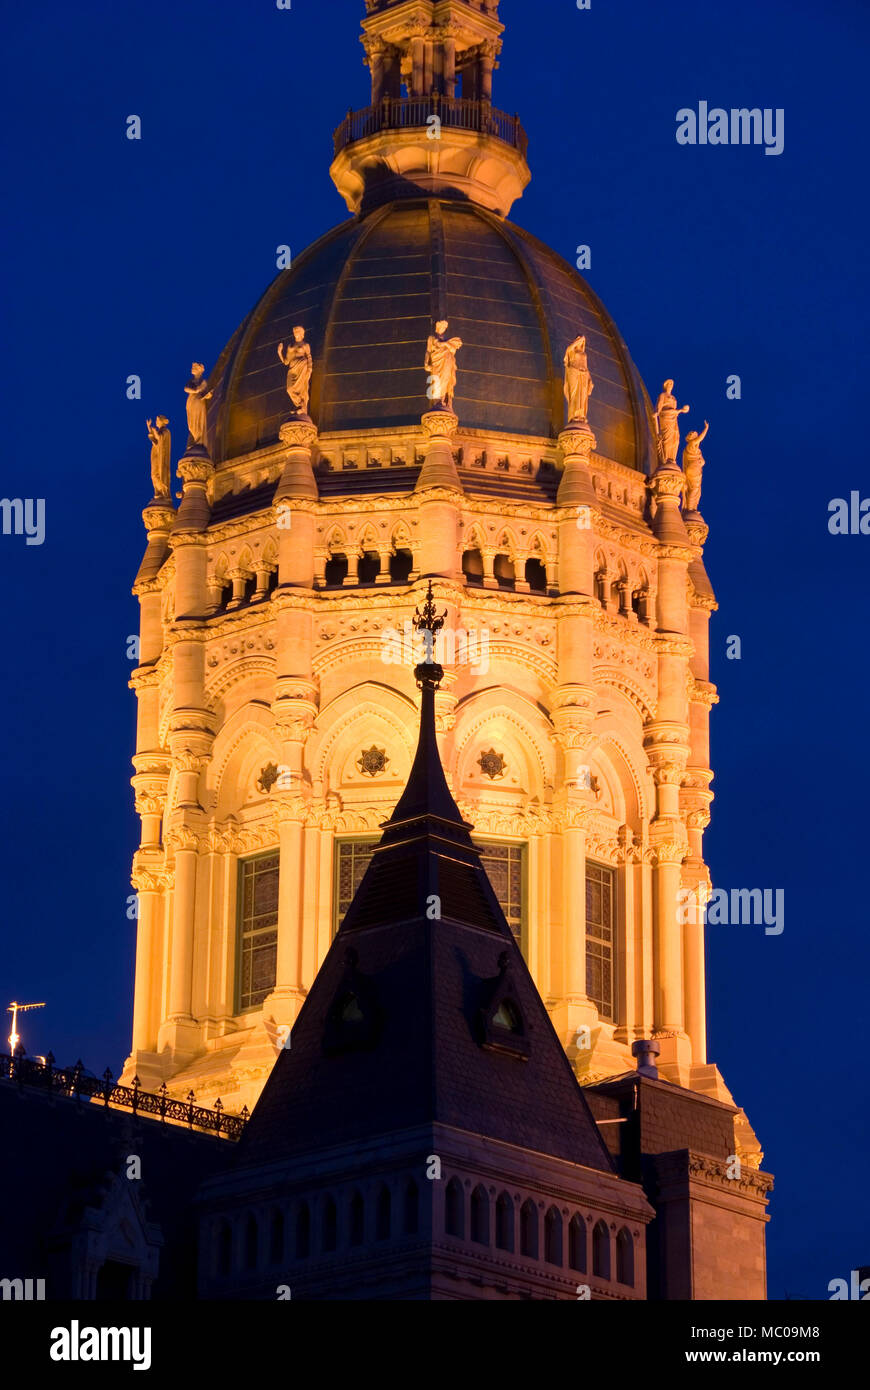 State Capitol dome at night, Connecticut State Capitol, Hartford, Connecticut - Stock Image